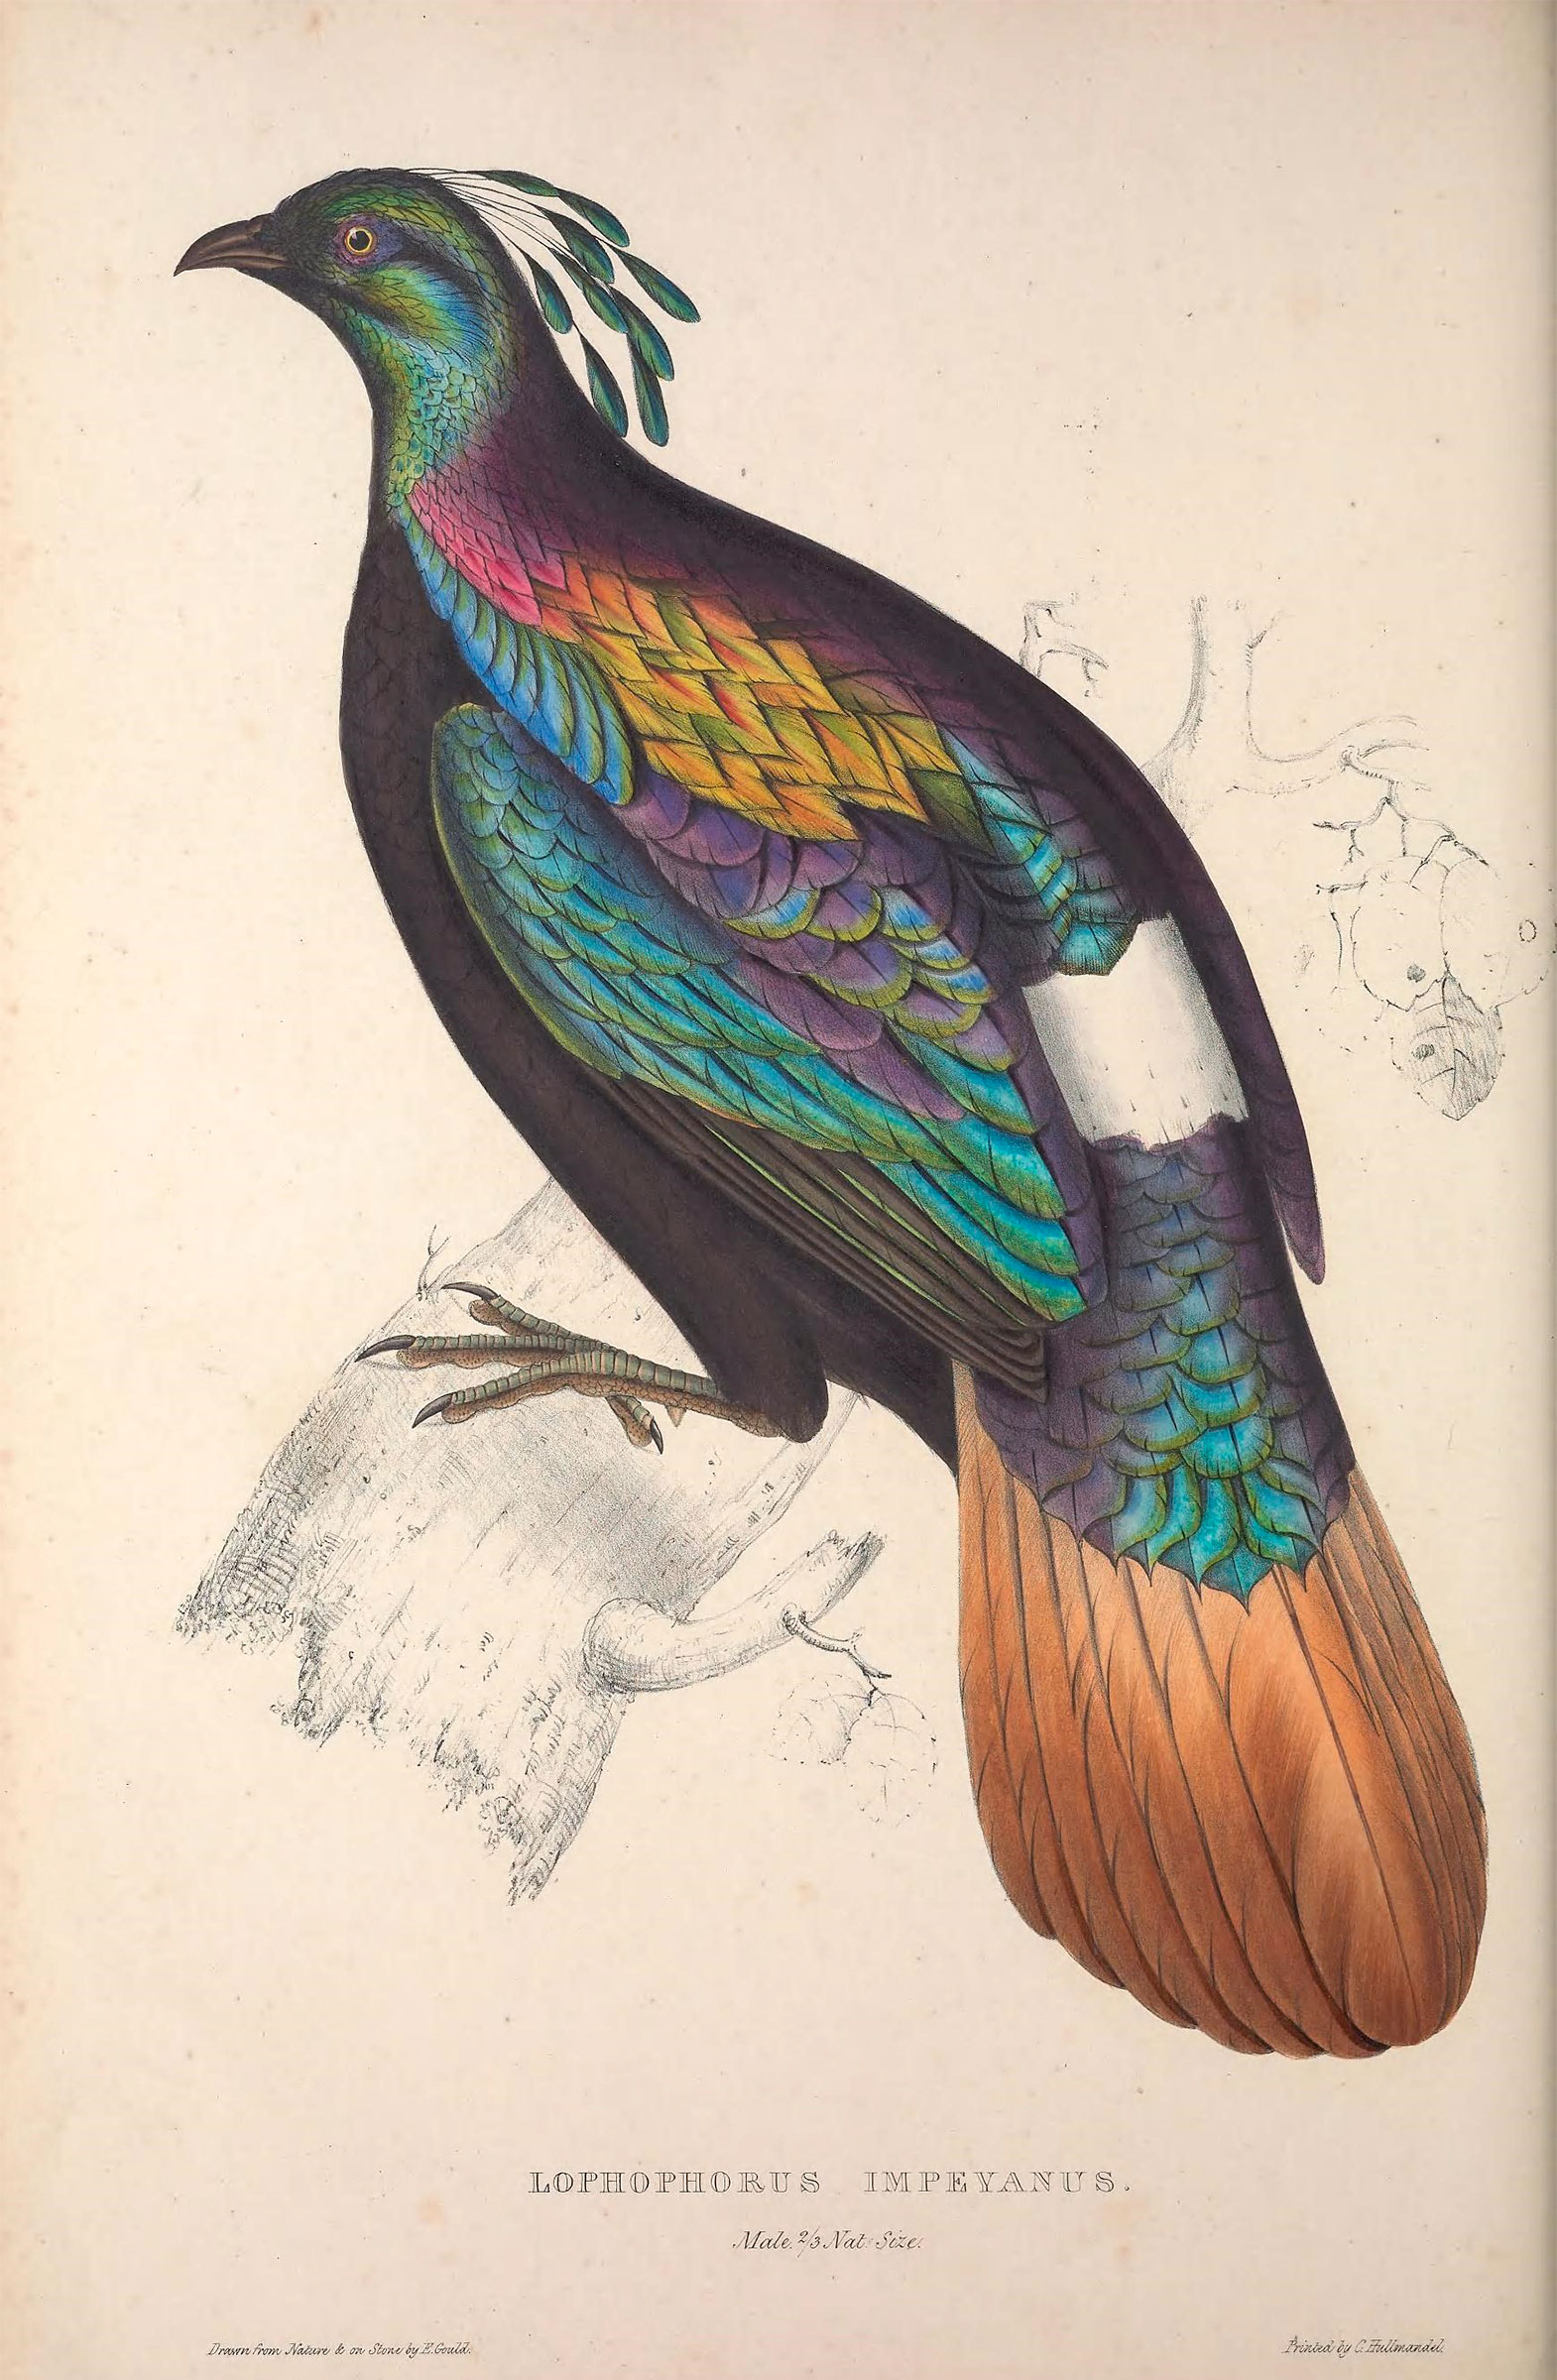 Himalayan Monal from A Century of Birds from the Himalaya Mountains. Illustration: Elizabeth Gould/Public Domain